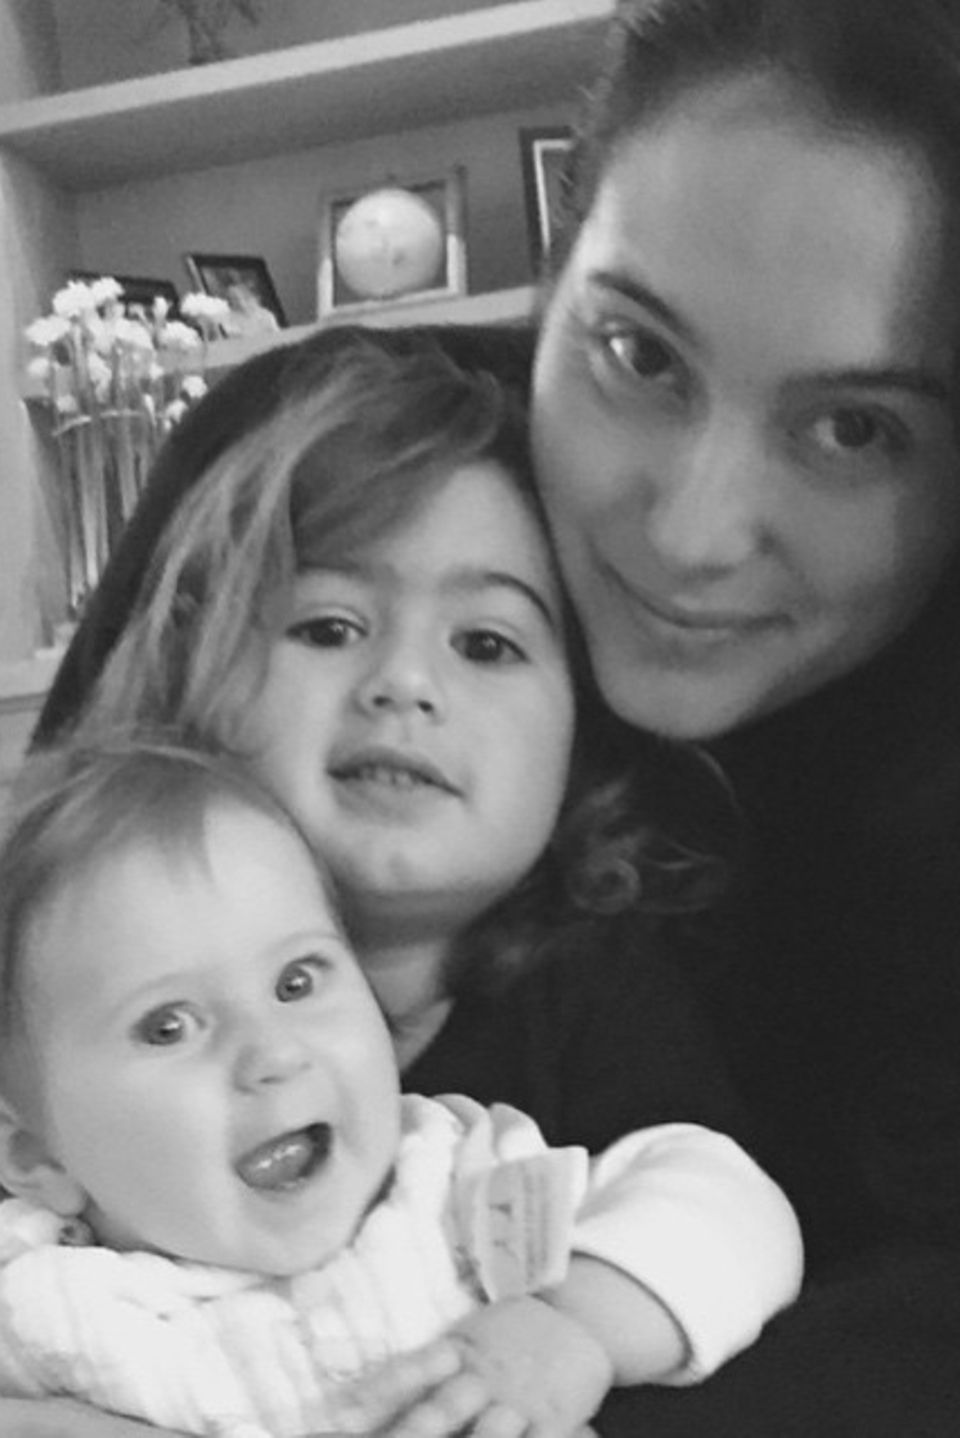 """Rumer Willis gratuliert nicht nur Mutter Demi Moore, sondern auch ihrer Stiefmama Emma Heming zum Muttertag. """"Thank you for giving me two beautiful baby sisters. I am so lucky to have you and them in my life. I love you."""""""